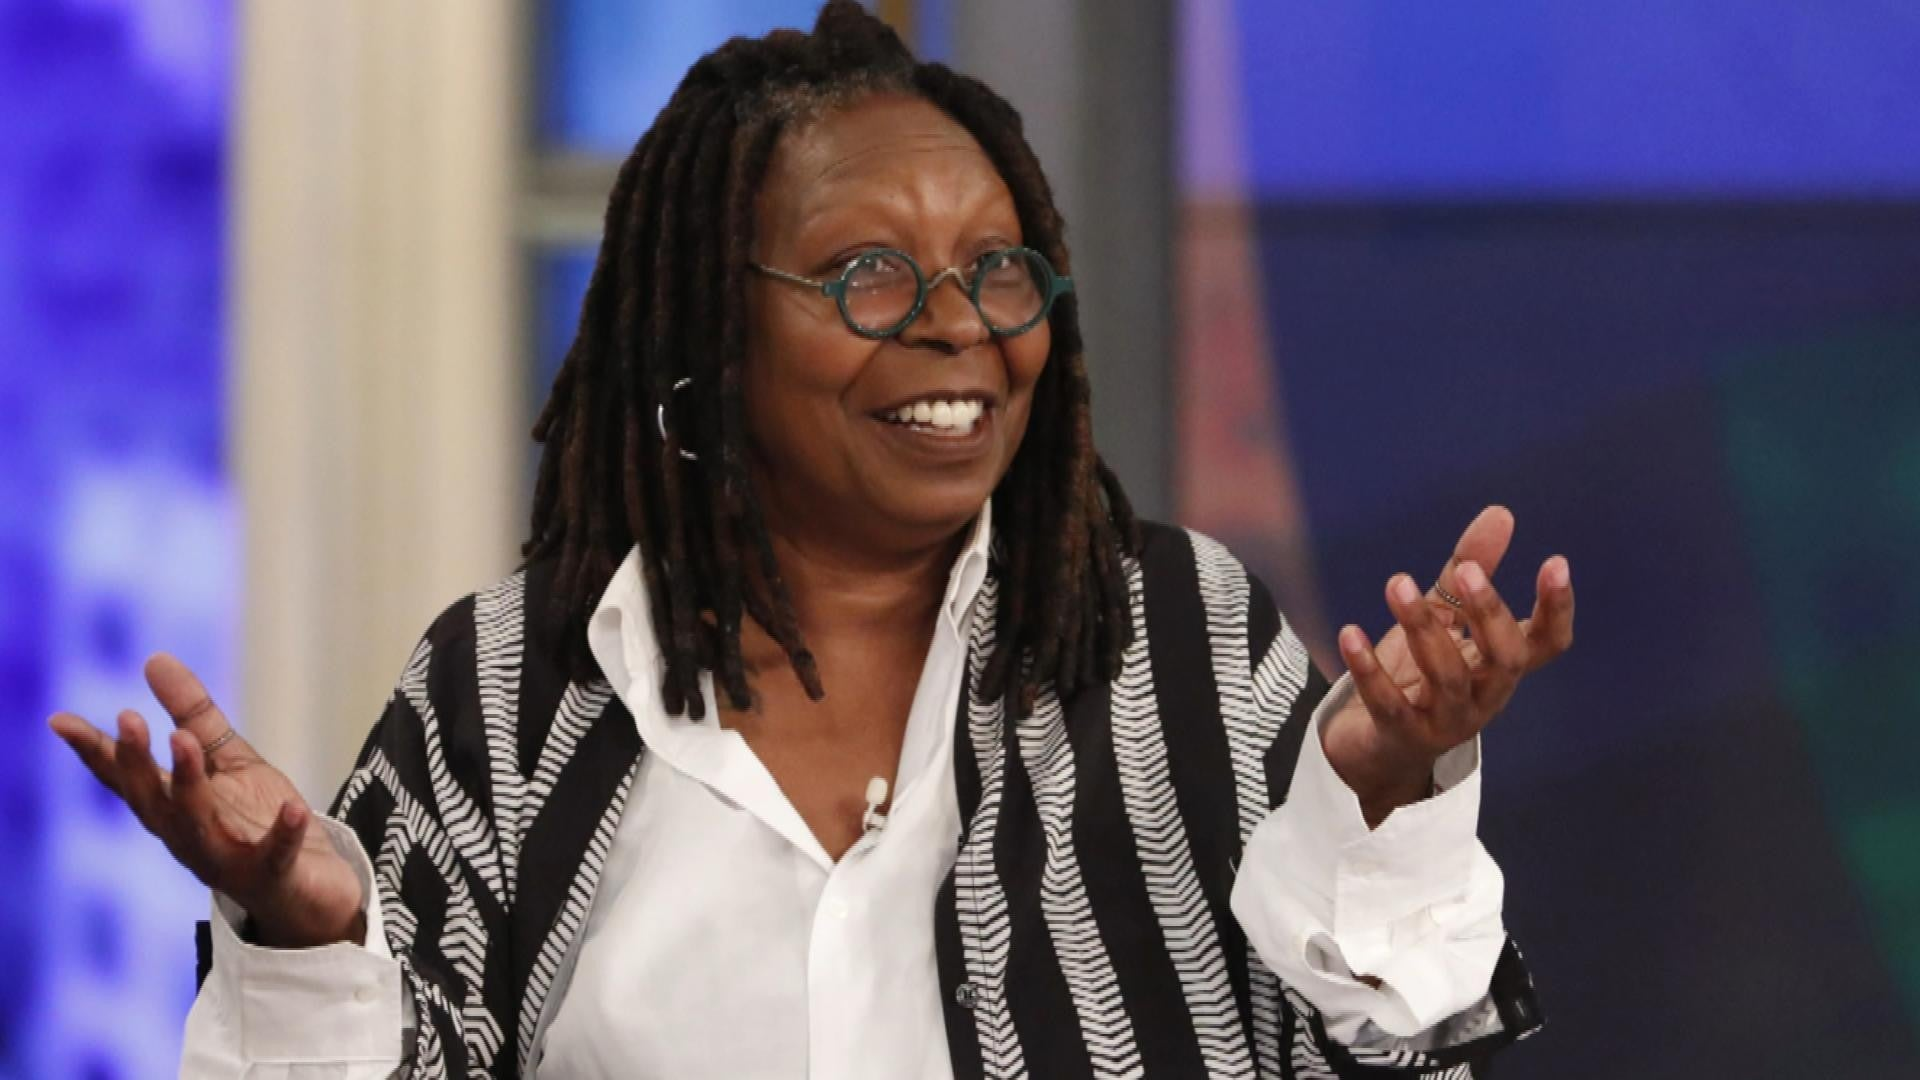 whoopi 2 10 Things You Never Knew About Whoopi Goldberg